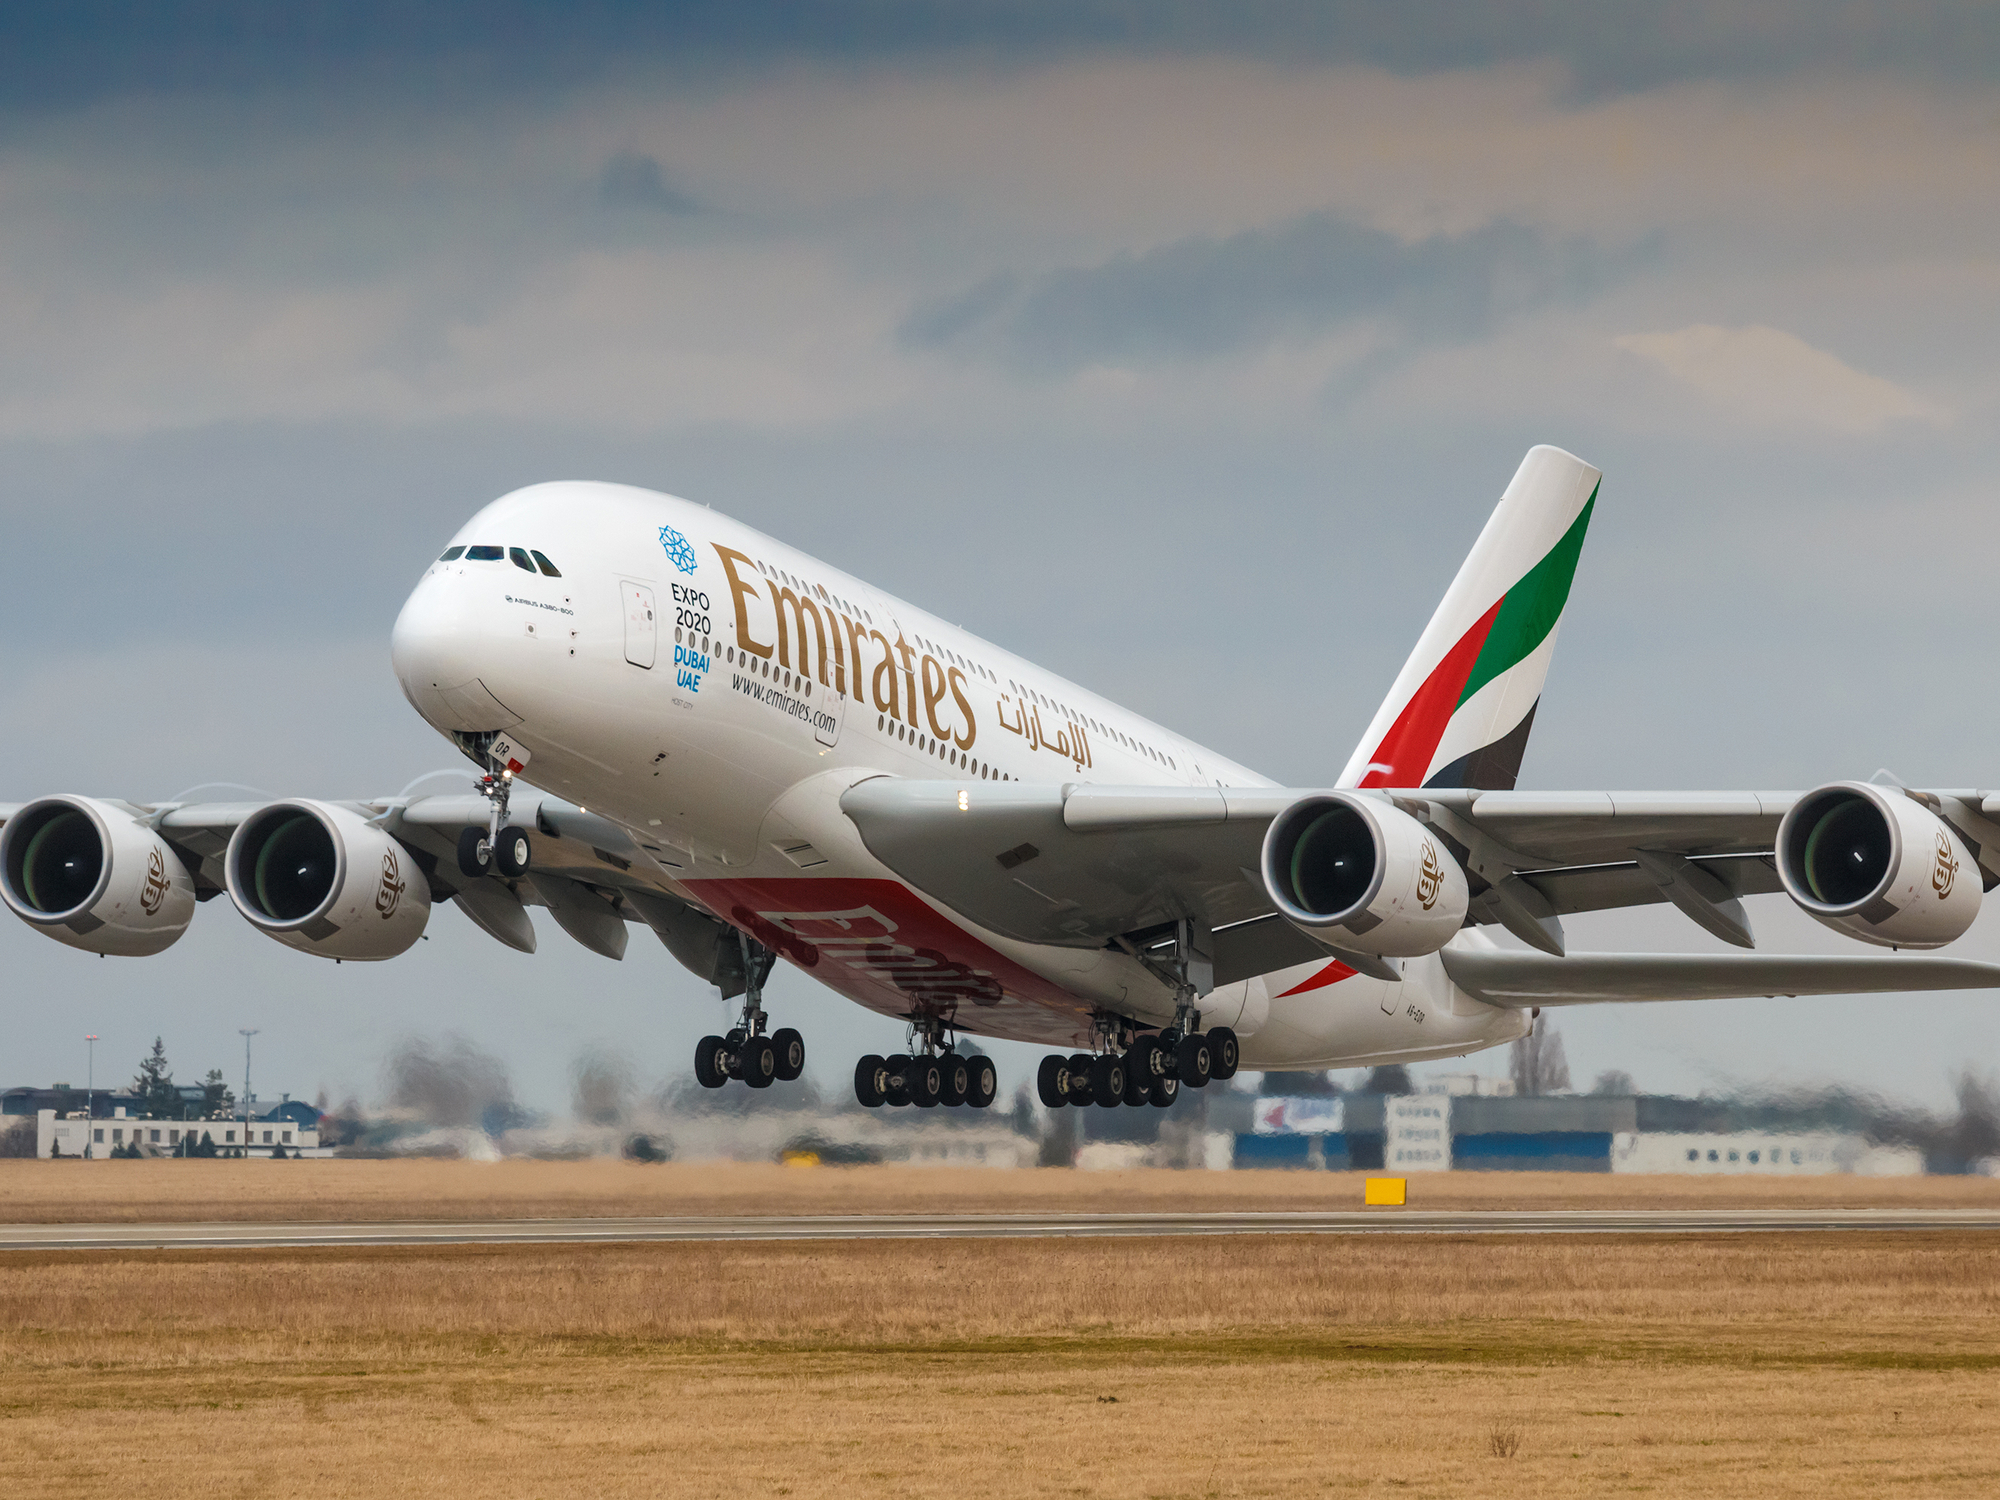 Rediscover 'love of the journey', says Emirates